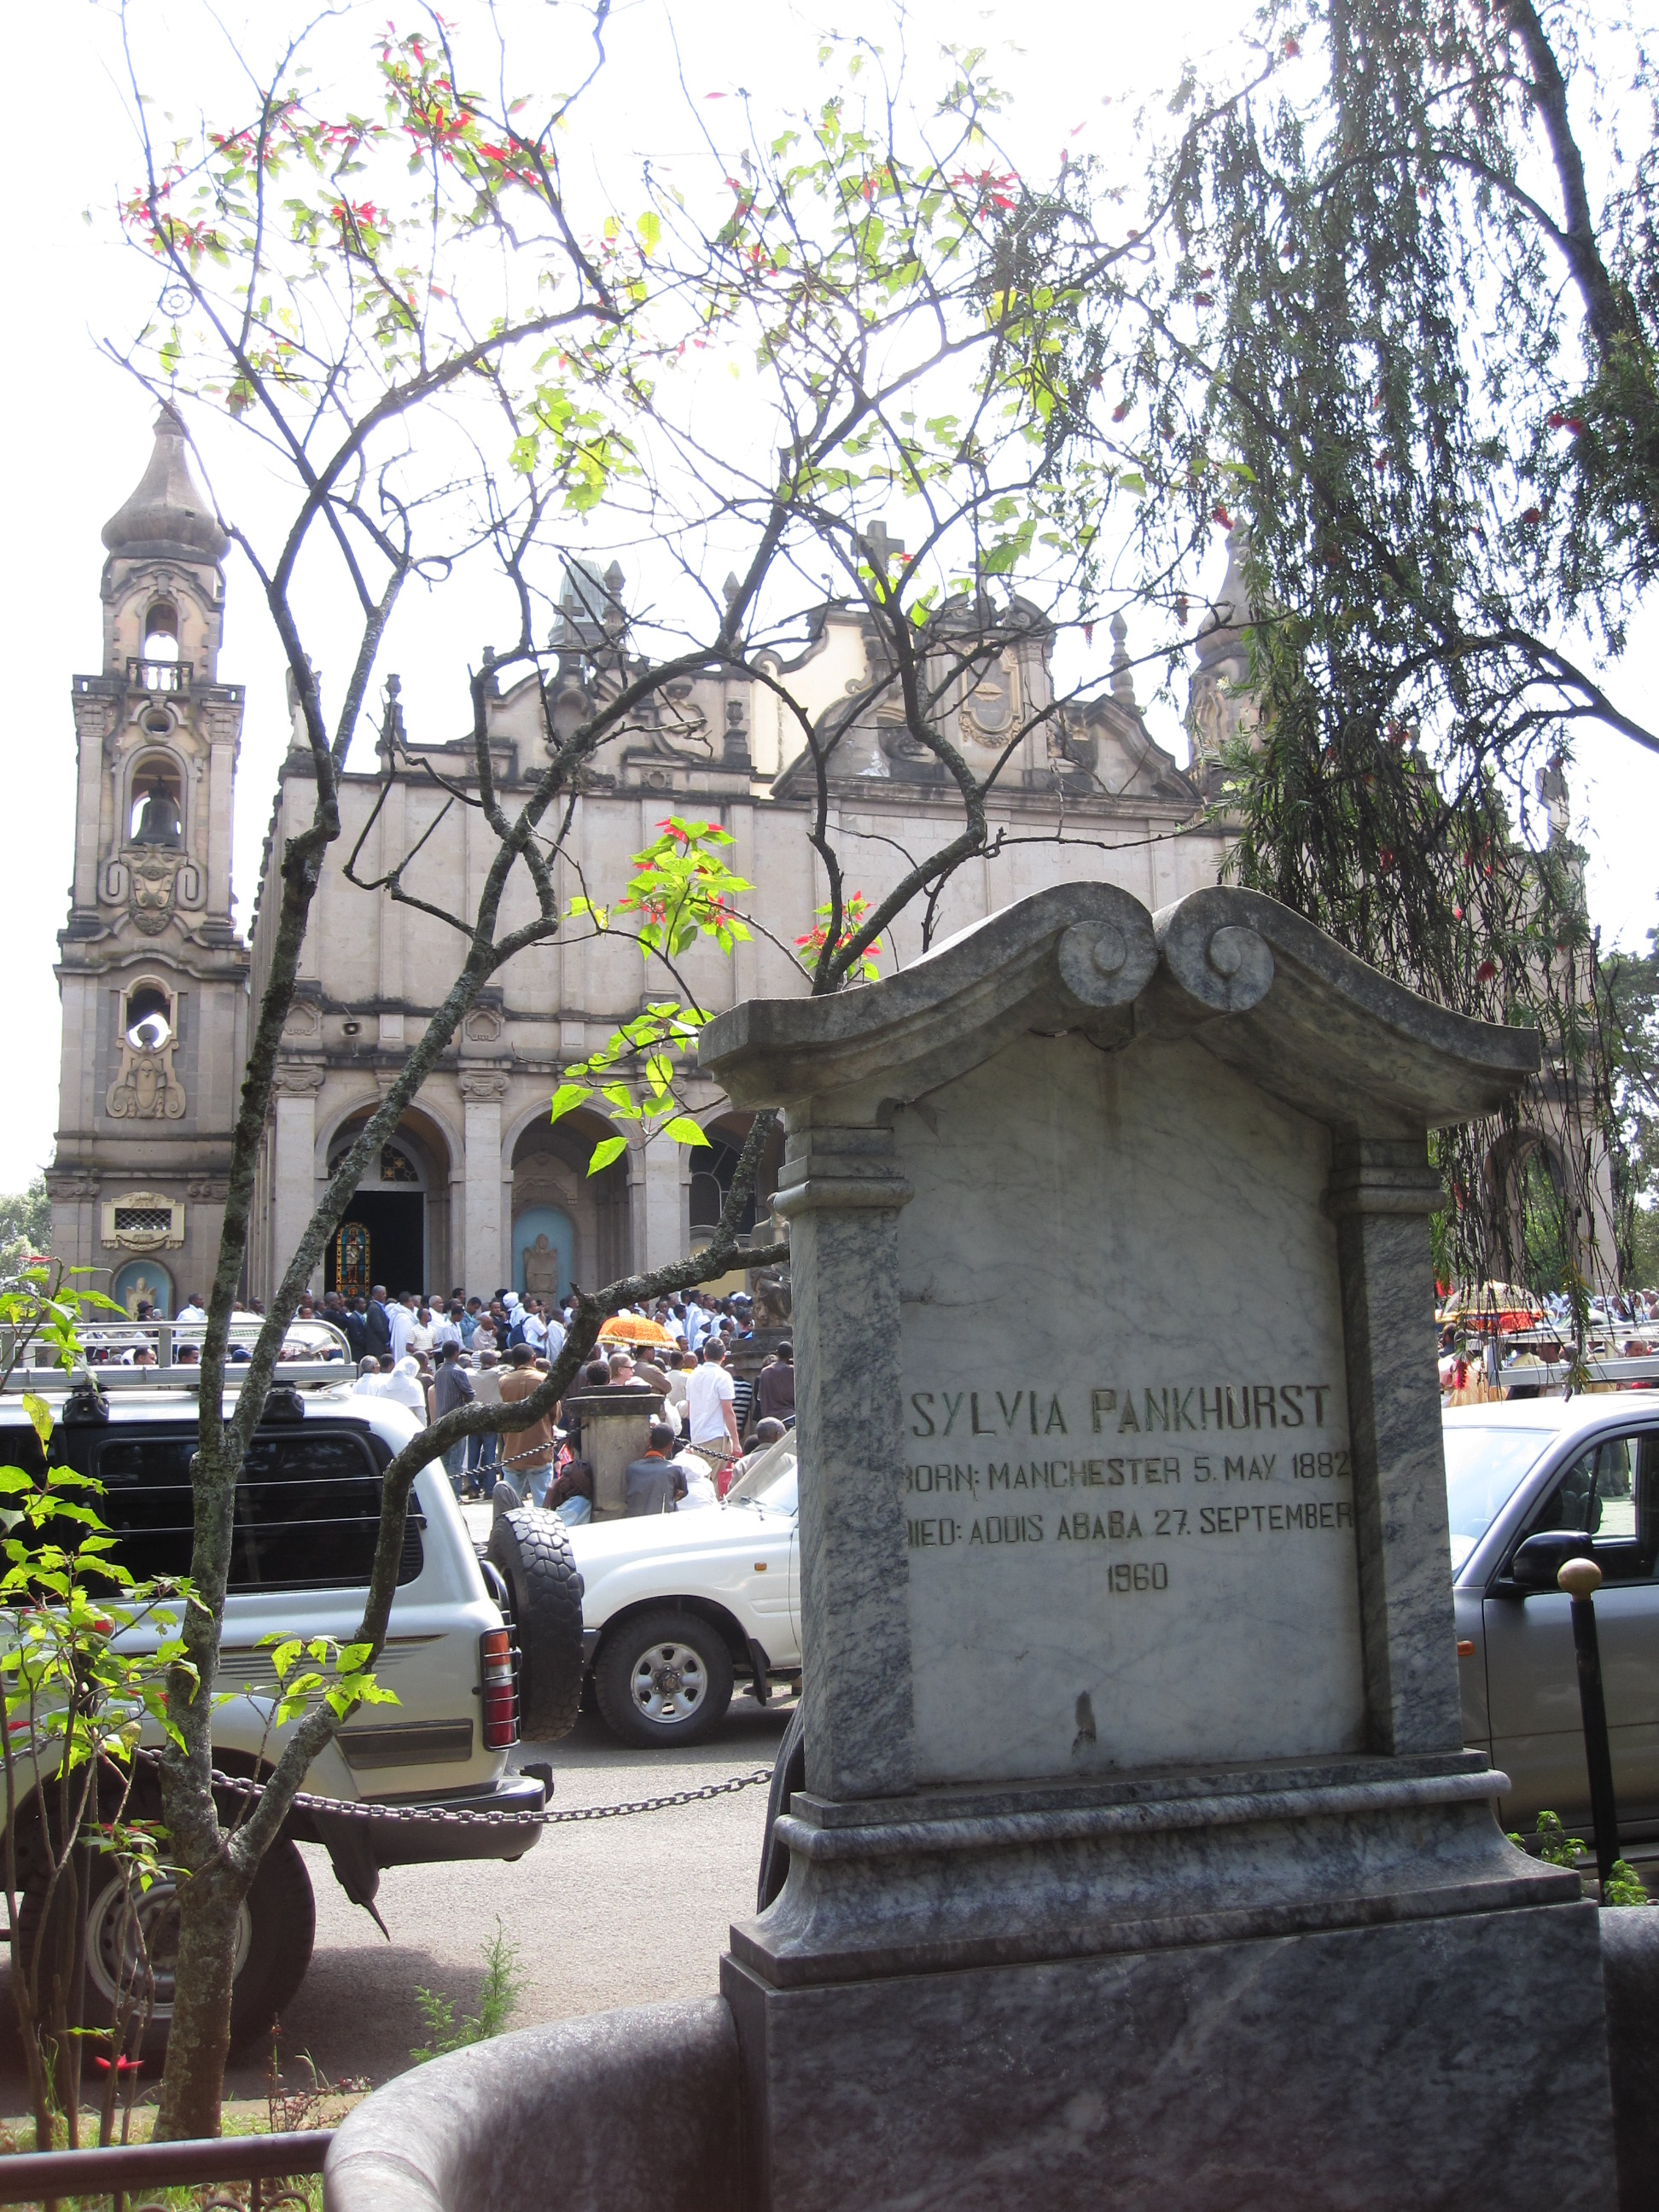 Sylvia Pankhurst's grave at Haile Selassie Church in Addis Ababa